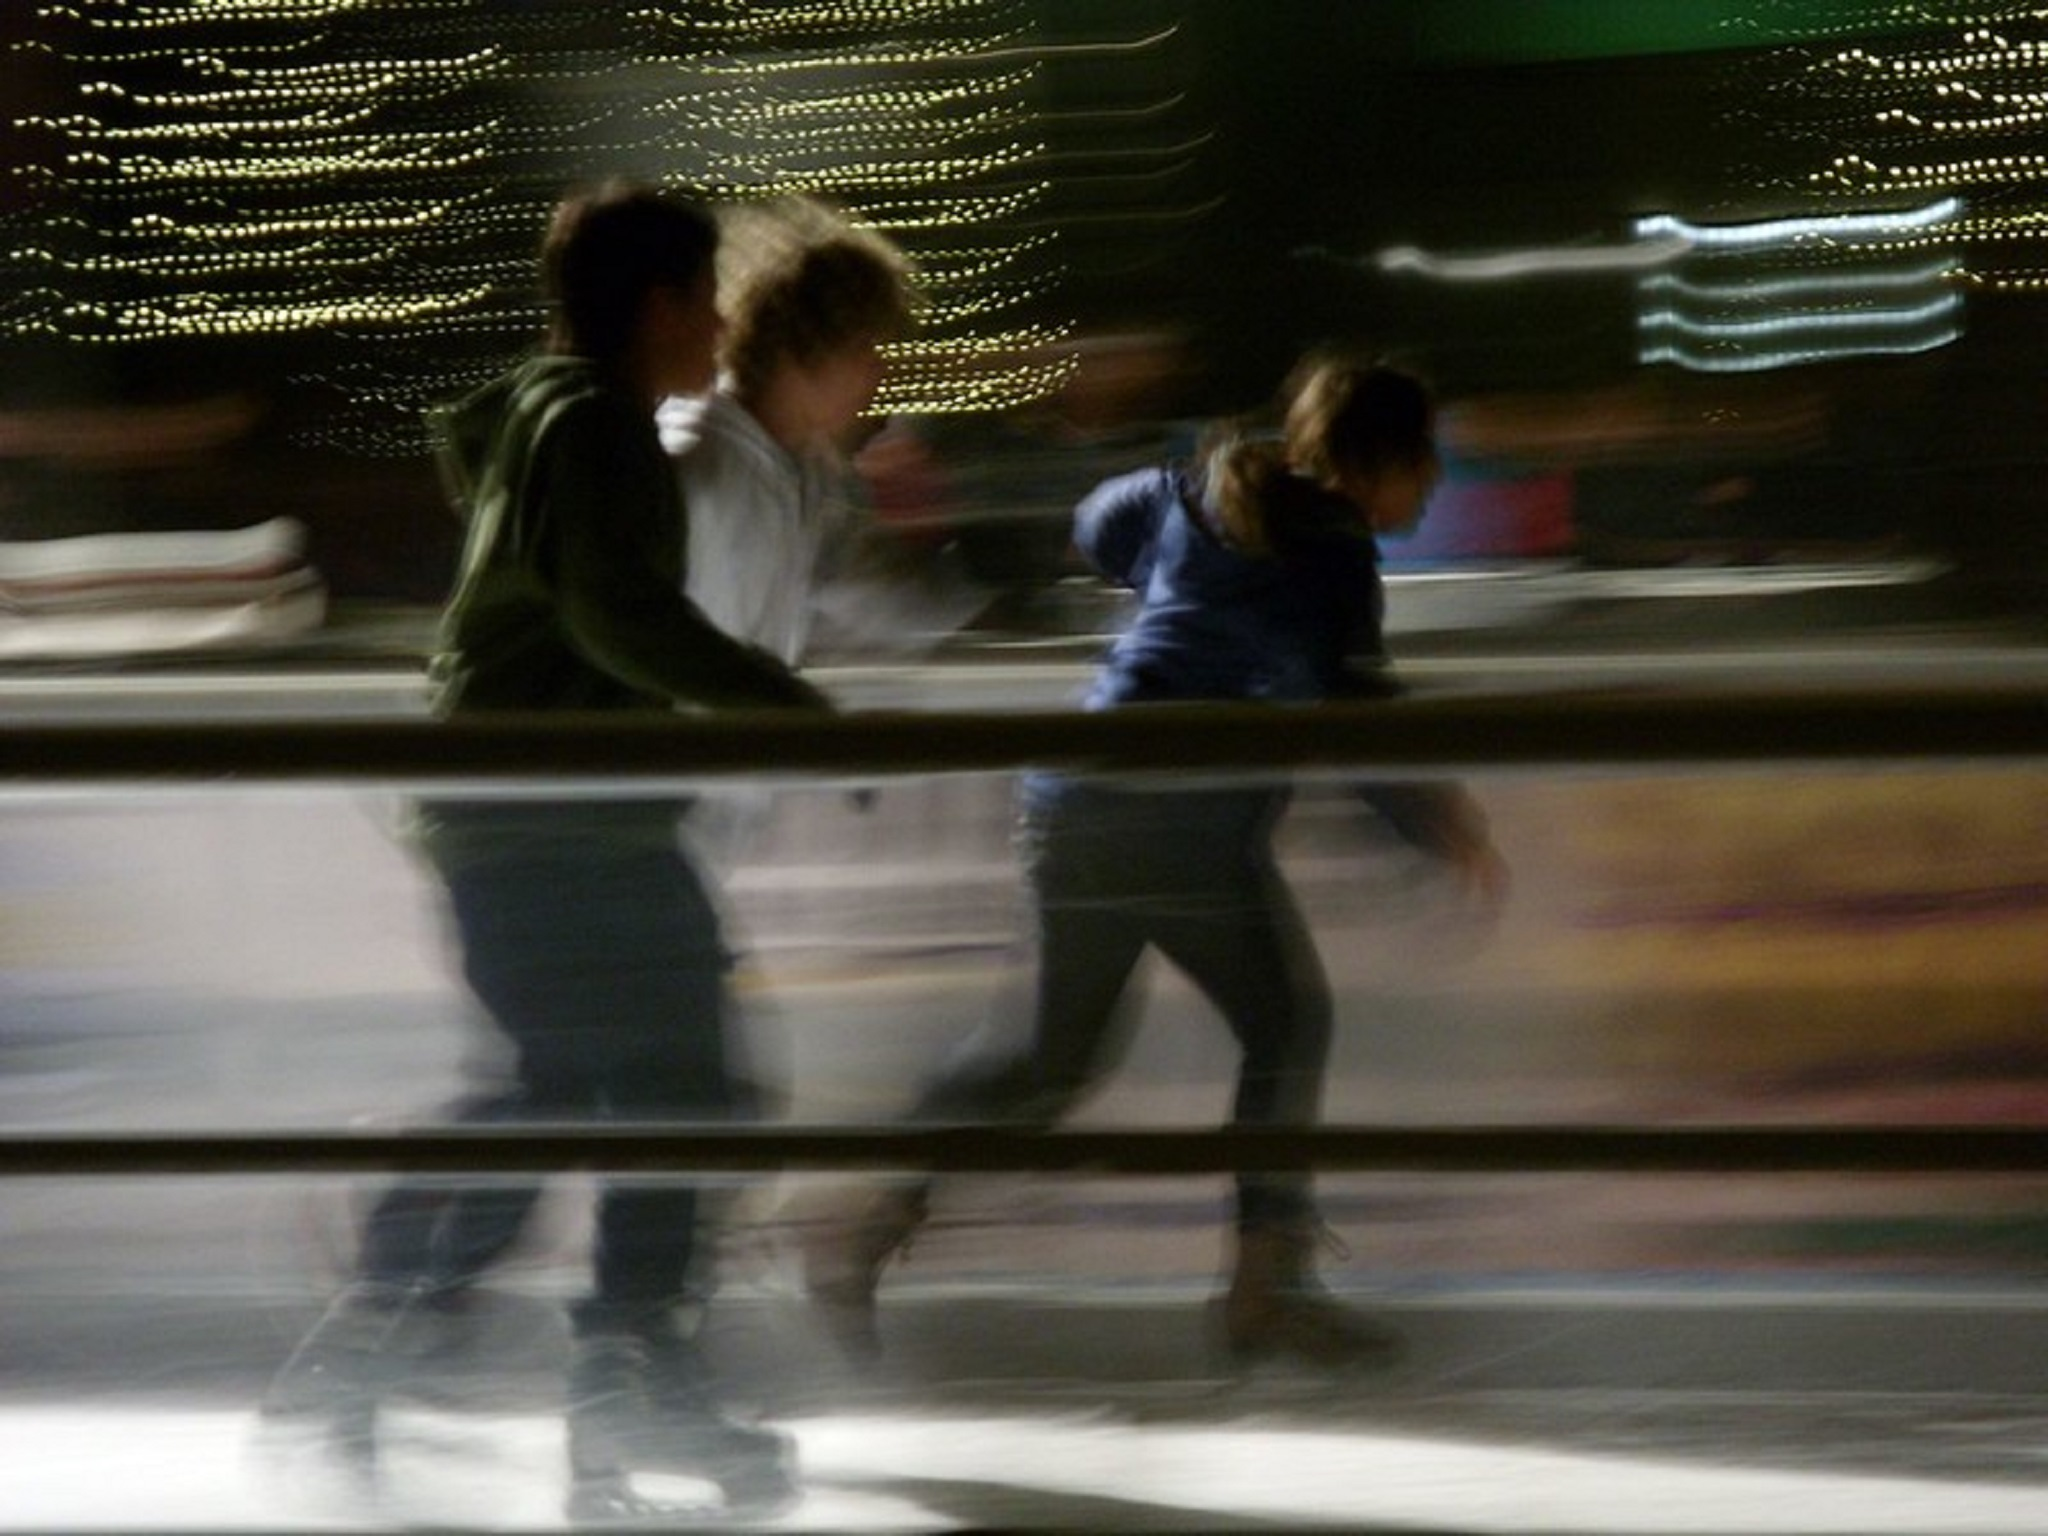 Three kids skating on an ice rink with blurred lights behind them